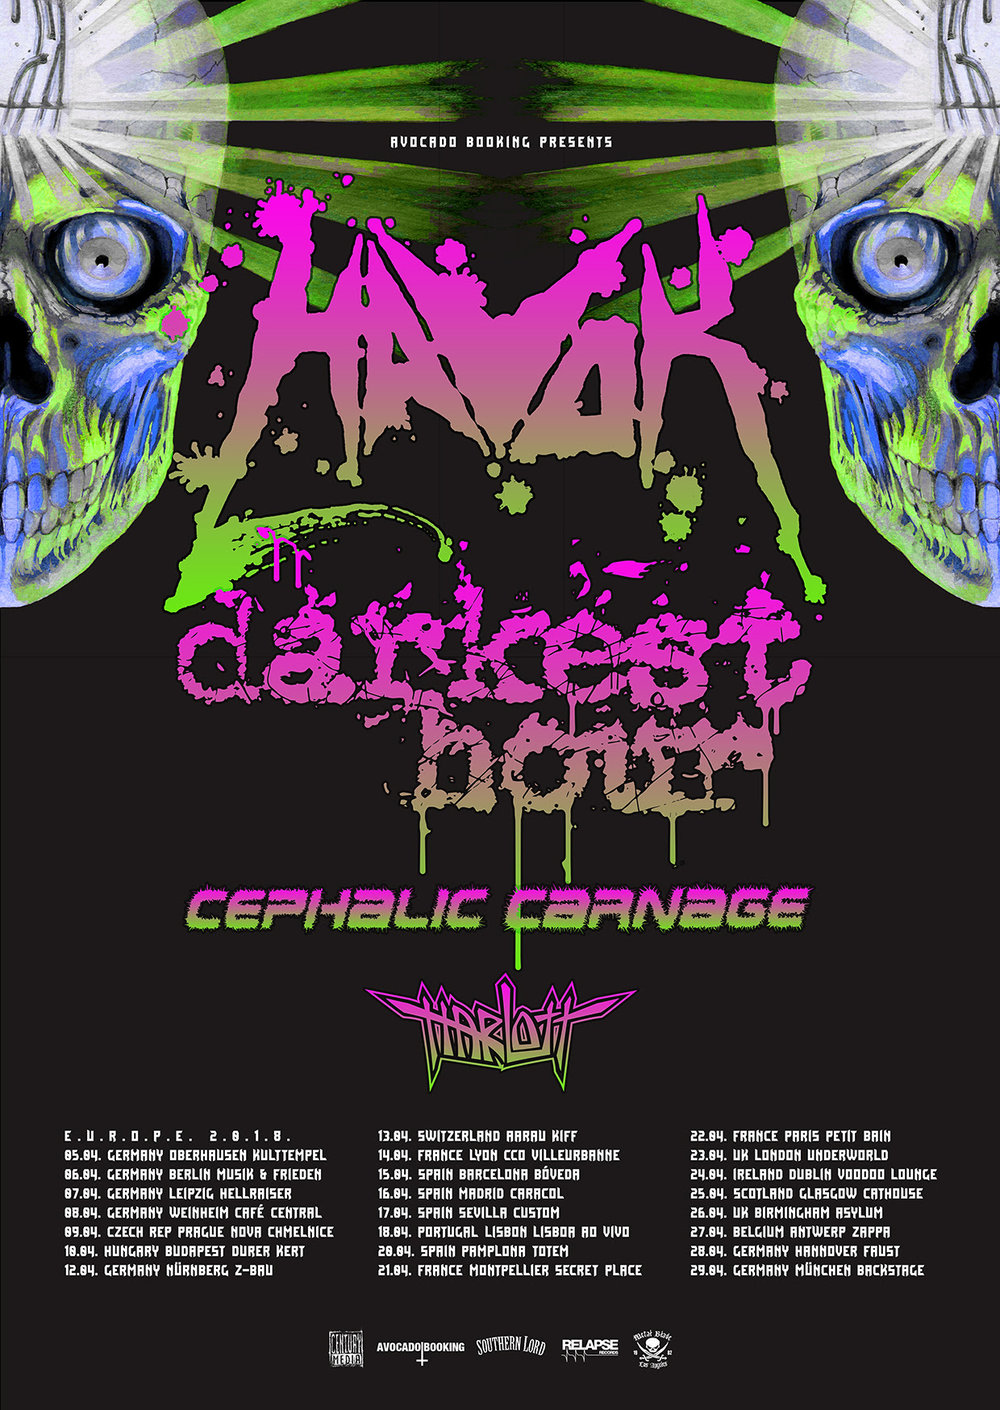 "Modern thrash metal pioneers  HAVOK  continue to promote their critically acclaimed album, ""Conformicide"" as they hit the road today across North America on ""The Killthrax Tour"" as direct support to Killswitch Engage and Anthrax. The trek will also include various one-off headlining gigs along the way.  Catch  HAVOK  at one of the below dates:   1/25 Montreal, QC - MTelus # 1/26 London, ON - London Music Hall # 1/27 Stroudsburgh, PA - Sherman Theater # 1/28 Richmond, VA - The National # 1/29 Columbia, SC - New Brooklyn Tavern  1/30 Tampa, FL - Jannus Live # 1/31 Charlotte, NC - The Fillmore Charlotte # 2/1 Dayton, OH - Rockstar Pro Arena  2/2 Milwaukee, WI - Eagles Ballroom # 2/3 Indianapolis, IN - Egyptian Room # 2/5 Nashville, TN - Marathon Music Works # 2/6 Birmingham, AL - Iron City # 2/8 Corpus Christi, TX - The Pavilion #  2/9 Lubbock, TX - Lonestar Pavilion # 2/10 Oklahoma City, OK - The Criterion # 2/11 Albuquerque, NM - El Rey Theatre # 2/12 Mesa, AZ - Club Red  2/13 San Diego, CA - House of Blues #  2/14 Anaheim, CA - House of Blues # 2/15 Reno, NV - Jub Jubs  2/16 Garden City, ID - Revolution Concert House # 2/17 Spokane, WA - Knitting Factory # 2/19 Edmonton, AB - The Ranch # 2/20 Grand Prairie, AB - Bowes Event Center #  2/21 Calgary, AB - MacEwan Hall # 2/22 Saskatoon, SK - Matriach Night Club # 2/23 Winnipeg, MB - Burton Cummings Theatre #  2/24 Minneapolis, MN - Skyway Theatre # 2/25 Sioux City, IA - Anthem @ Hard Rock #  2/27 Joliet, IL - The Forge # 2/28 Cleveland, OH - The Odeon #  3/1 Baltimore, MD - Ram's Head Live #  3/2 Rochester, NY - Dome Arena # 3/3 Worcester, MA - The Palladium #  3/4 Portland, ME - State Theatre # 3/5 Quebec City, QC - L'Anti # 3/6 Toronto, ON - Rockpile West  # 3/7 Ferndale, MI - The Loving Touch  # 3/8 Bloomington, IL - The Castle Theater  # with Killswitch Engage & Anthrax  Following the above shows,  HAVOK  are excited to announce they will make their return to European stages in April for a headlining run featuring support from Darkest Hour, Cephalic Carnage and Harlott. Dates can be found below!   Watch a video message from the band about the upcoming tour here:    https://www.facebook.com/HavokOfficial/videos/10155276830768097/    HAVOK European Tour Dates:  4/5    Oberhausen, DE - Kultempel &  4/6    Berlin, DE - Musik & Freiden &  4/7    Leipzig, DE - Hellraiser &  4/8    Weinheim, DE - Cafe Central &  4/9    Prague, CZ - Nova Chmelnice &  4/10  Budapest, HU - Durer Kert &  4/12  Nurnberg, DE - Z-Bau &  4/13  Aarau, CH - Kiff & 4/14  Lyon, FR - CCO Villeurbanna &  4/15  Barcelona, ES - Boveda &  4/16  Madrid, ES - Caracol &  4/17  Sevilla, ES - Custom &  4/18  Lisbon, PT - Lisboa Ao Vivo &   4/20  Pamplona, ES - Totem &  4/21  Montpelier, FR - Secret Place &  4/22  Paris, FR - Petit Bain &  4/23  London, UK - Underworld &  4/24  Dublin, UK - Voodoo Lounge &  4/25  Glasgow, UK - Cathouse &  4/26  Birmingham, UK - Asylum &  4/27  Antwerp, BE - Zappa  &  4/28  Hannover, DE - Faust &  4/29  Munich, DE - Backstage &  & with Darkest Hour & Cephalic Carnage & Harlott   Upon release,  HAVOK 's latest album ""Conformicide"" entered the official sales charts as follows: Germany (Top 100 Charts): # 94, Belgium (Flemish Charts): # 124, USA (Billboard Charts): # 67 Billboard Top Current Albums, # 4 Billboard Heatseekers, # 4 Billboard Current Hard Music, # 5 Billboard Top Hard Music, # 23 Billboard Rock.  ""Conformicide"" is available as special edition Digipak (with 2 bonus tracks), as 2LP in various limited vinyl colour options (with 3 bonus tracks, logo-etching on Side D and the album on CD as bonus) as well as in the Digital Download format.  Get your copy of ""Conformicide"" now at  http://smarturl.it/HAVOKconformicide      Check out the album's video singles here:   ""Intention To Deceive"" (Video clip):  https://youtu.be/2GT9m0jX9vw   ""Hang 'Em High"" (Lyric video):  https://youtu.be/2HYIfA3p8jw  ""Ingsoc"" (Album track):  https://youtu.be/jP2pzw8jV9s     HAVOK Online:   http://havokband.com   https://www.facebook.com/HavokOfficial   https://twitter.com/havokthrash   https://www.instagram.com/havokbandofficial"